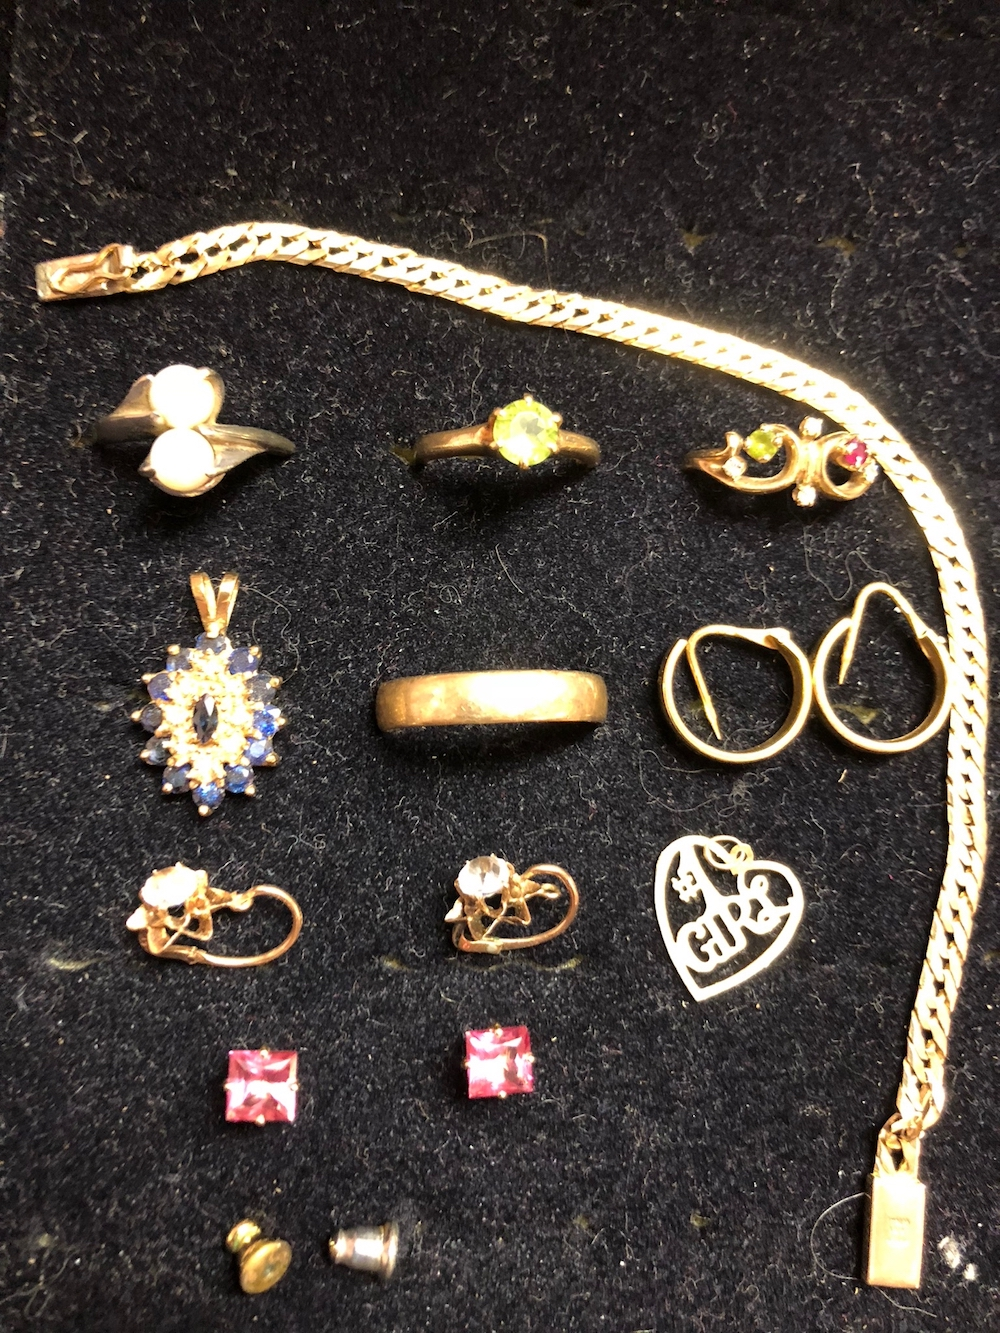 18kt, 14kt, and 10kt Gold Estate Jewelry